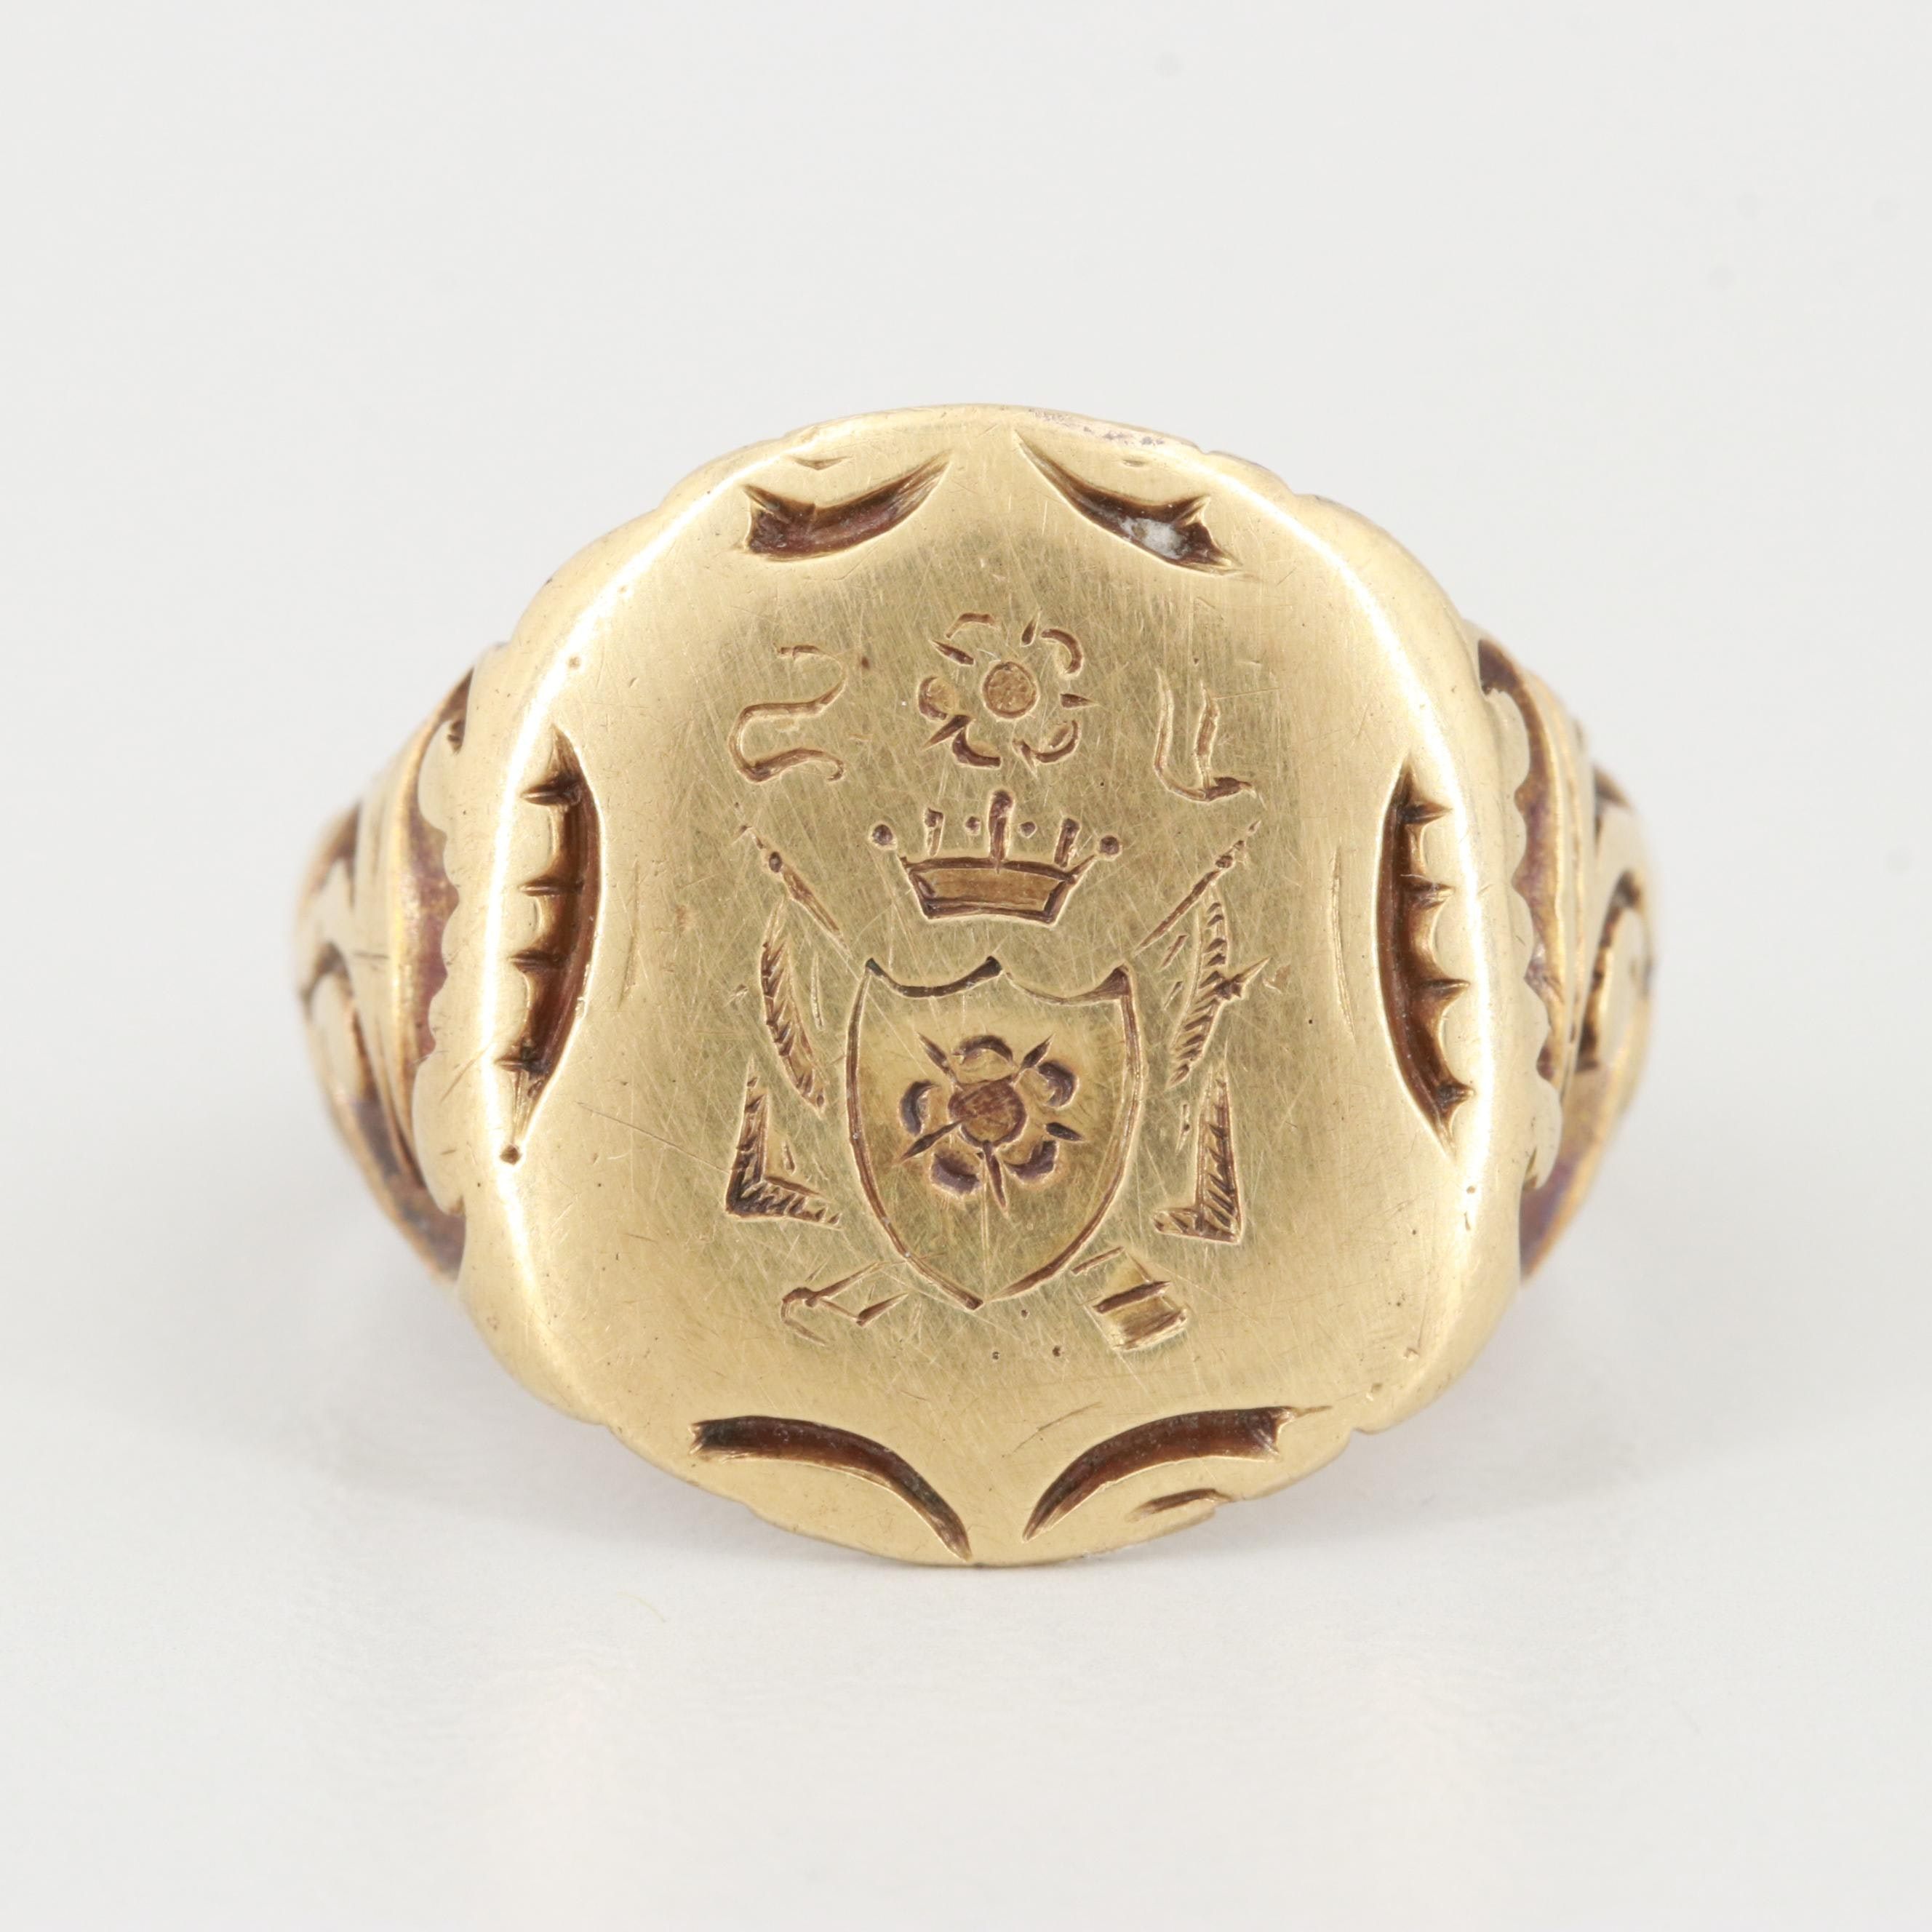 Antique 14K Yellow Gold Crest Ring